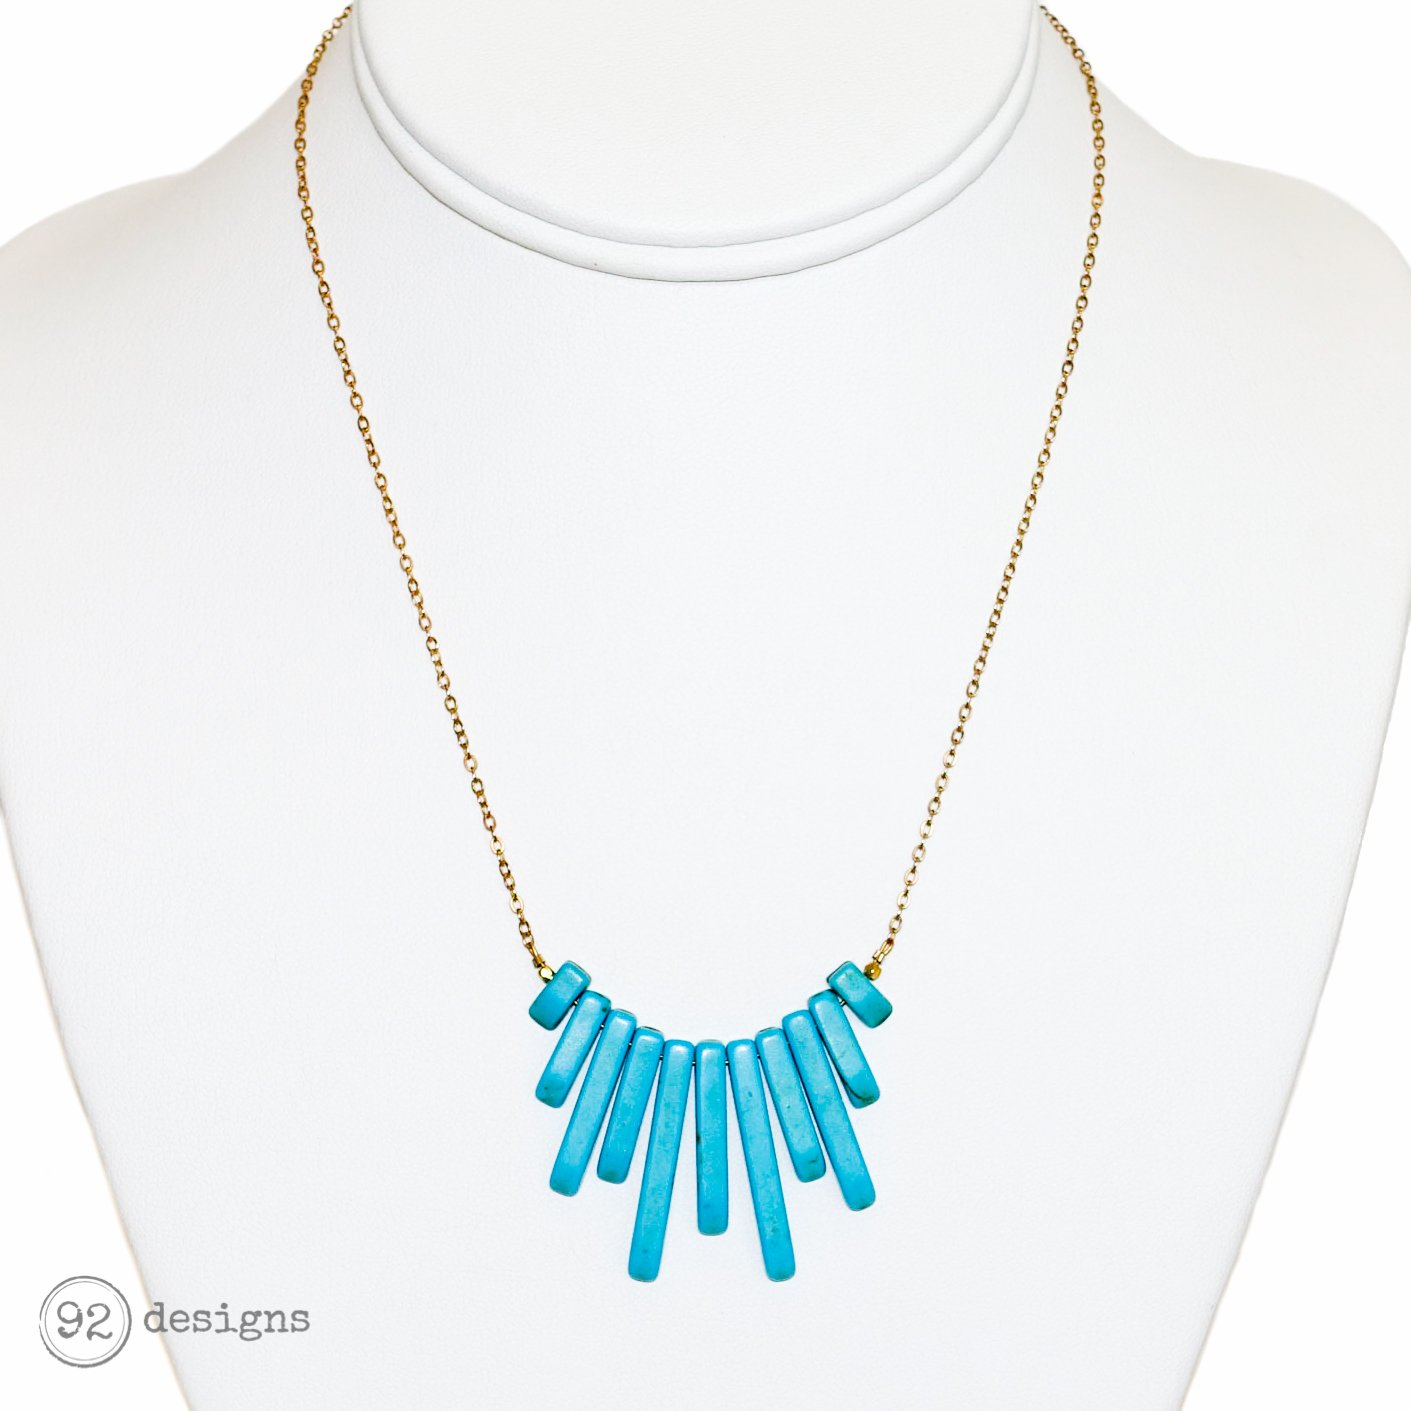 kingman bilagaanas jewellery tq turquoise necklace set royston mtn boulder neck